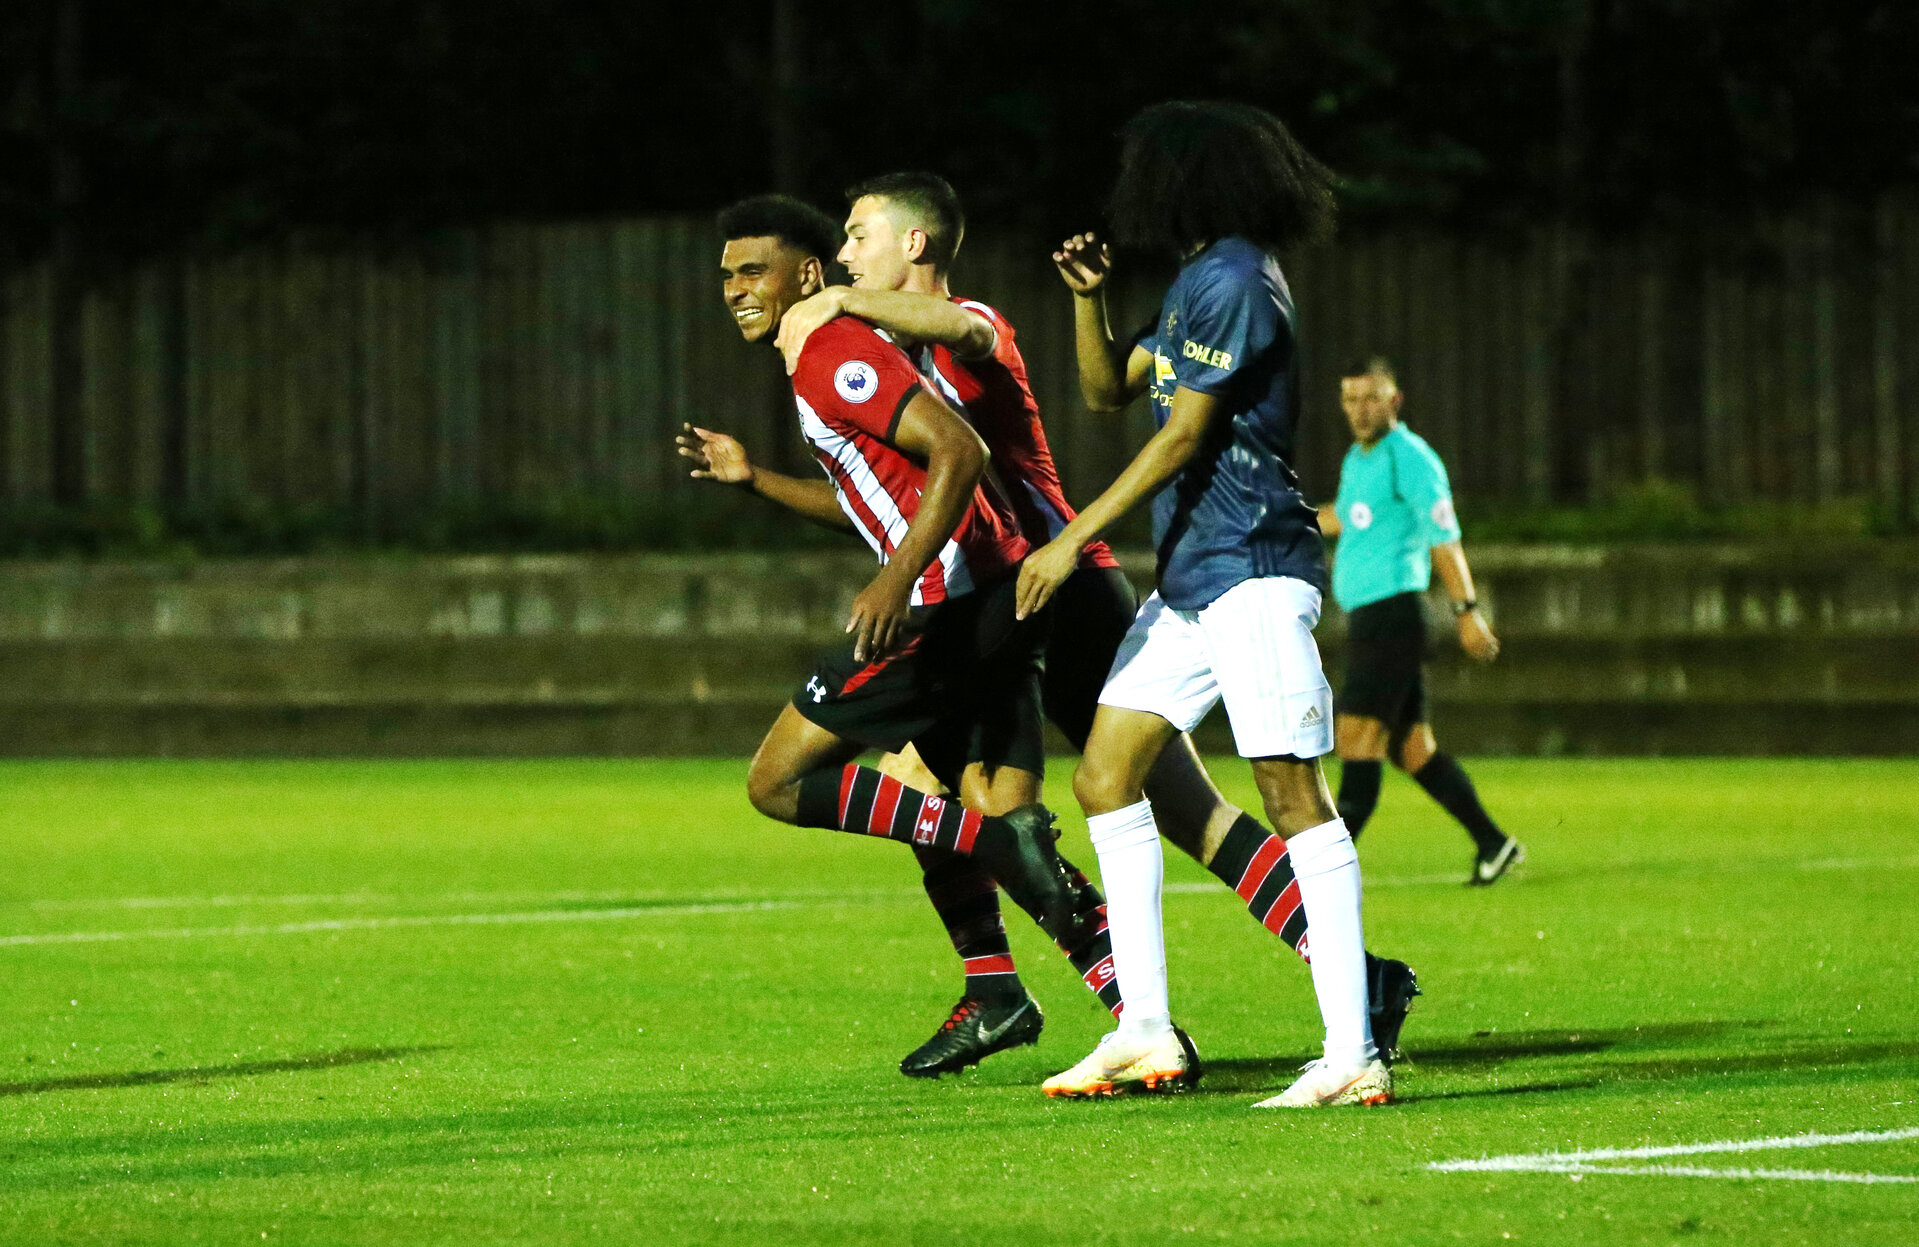 Marcus Barnes' goal celebration. Southampton U23s v Manchester United U23s, Staplewood Campus, Marchwood, Southampton            Picture: Chris Moorhouse               Friday 24th August 2018             FOR EDITORIAL USE ONLY